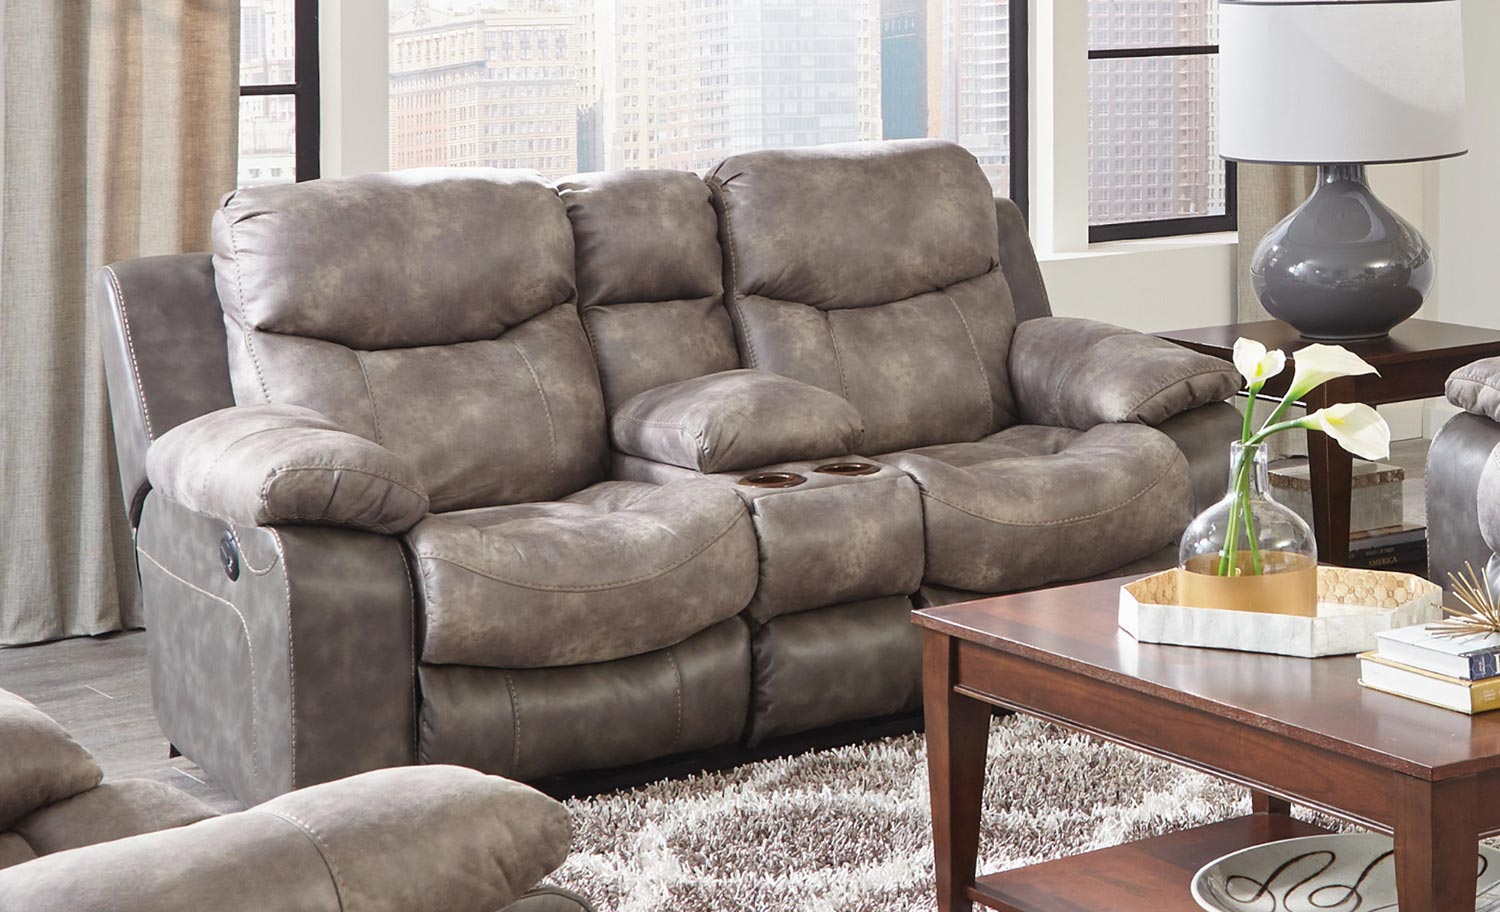 CatNapper Henderson Reclining Console Loveseat With Storage and Cupholders - Steel